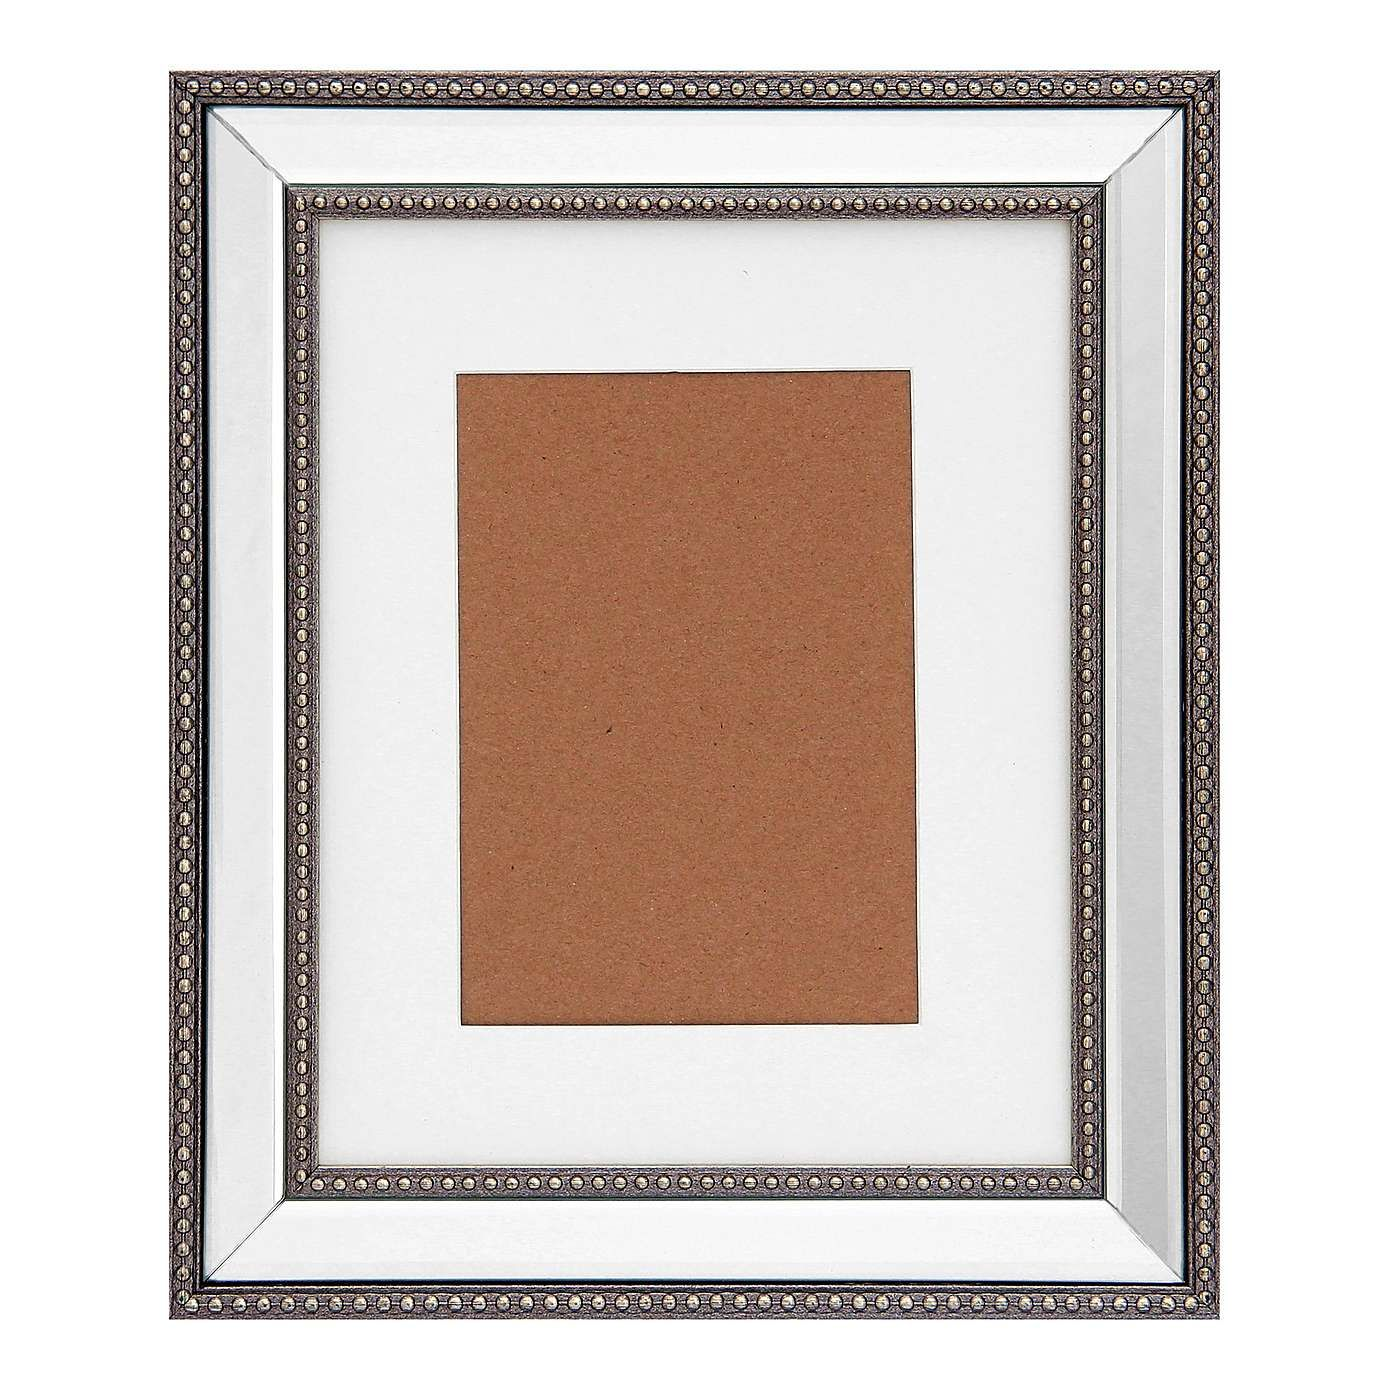 Mirrored Picture Frames Dorma Champagne Mirrored Photo Frame 6 X 4 15cm X 10cm